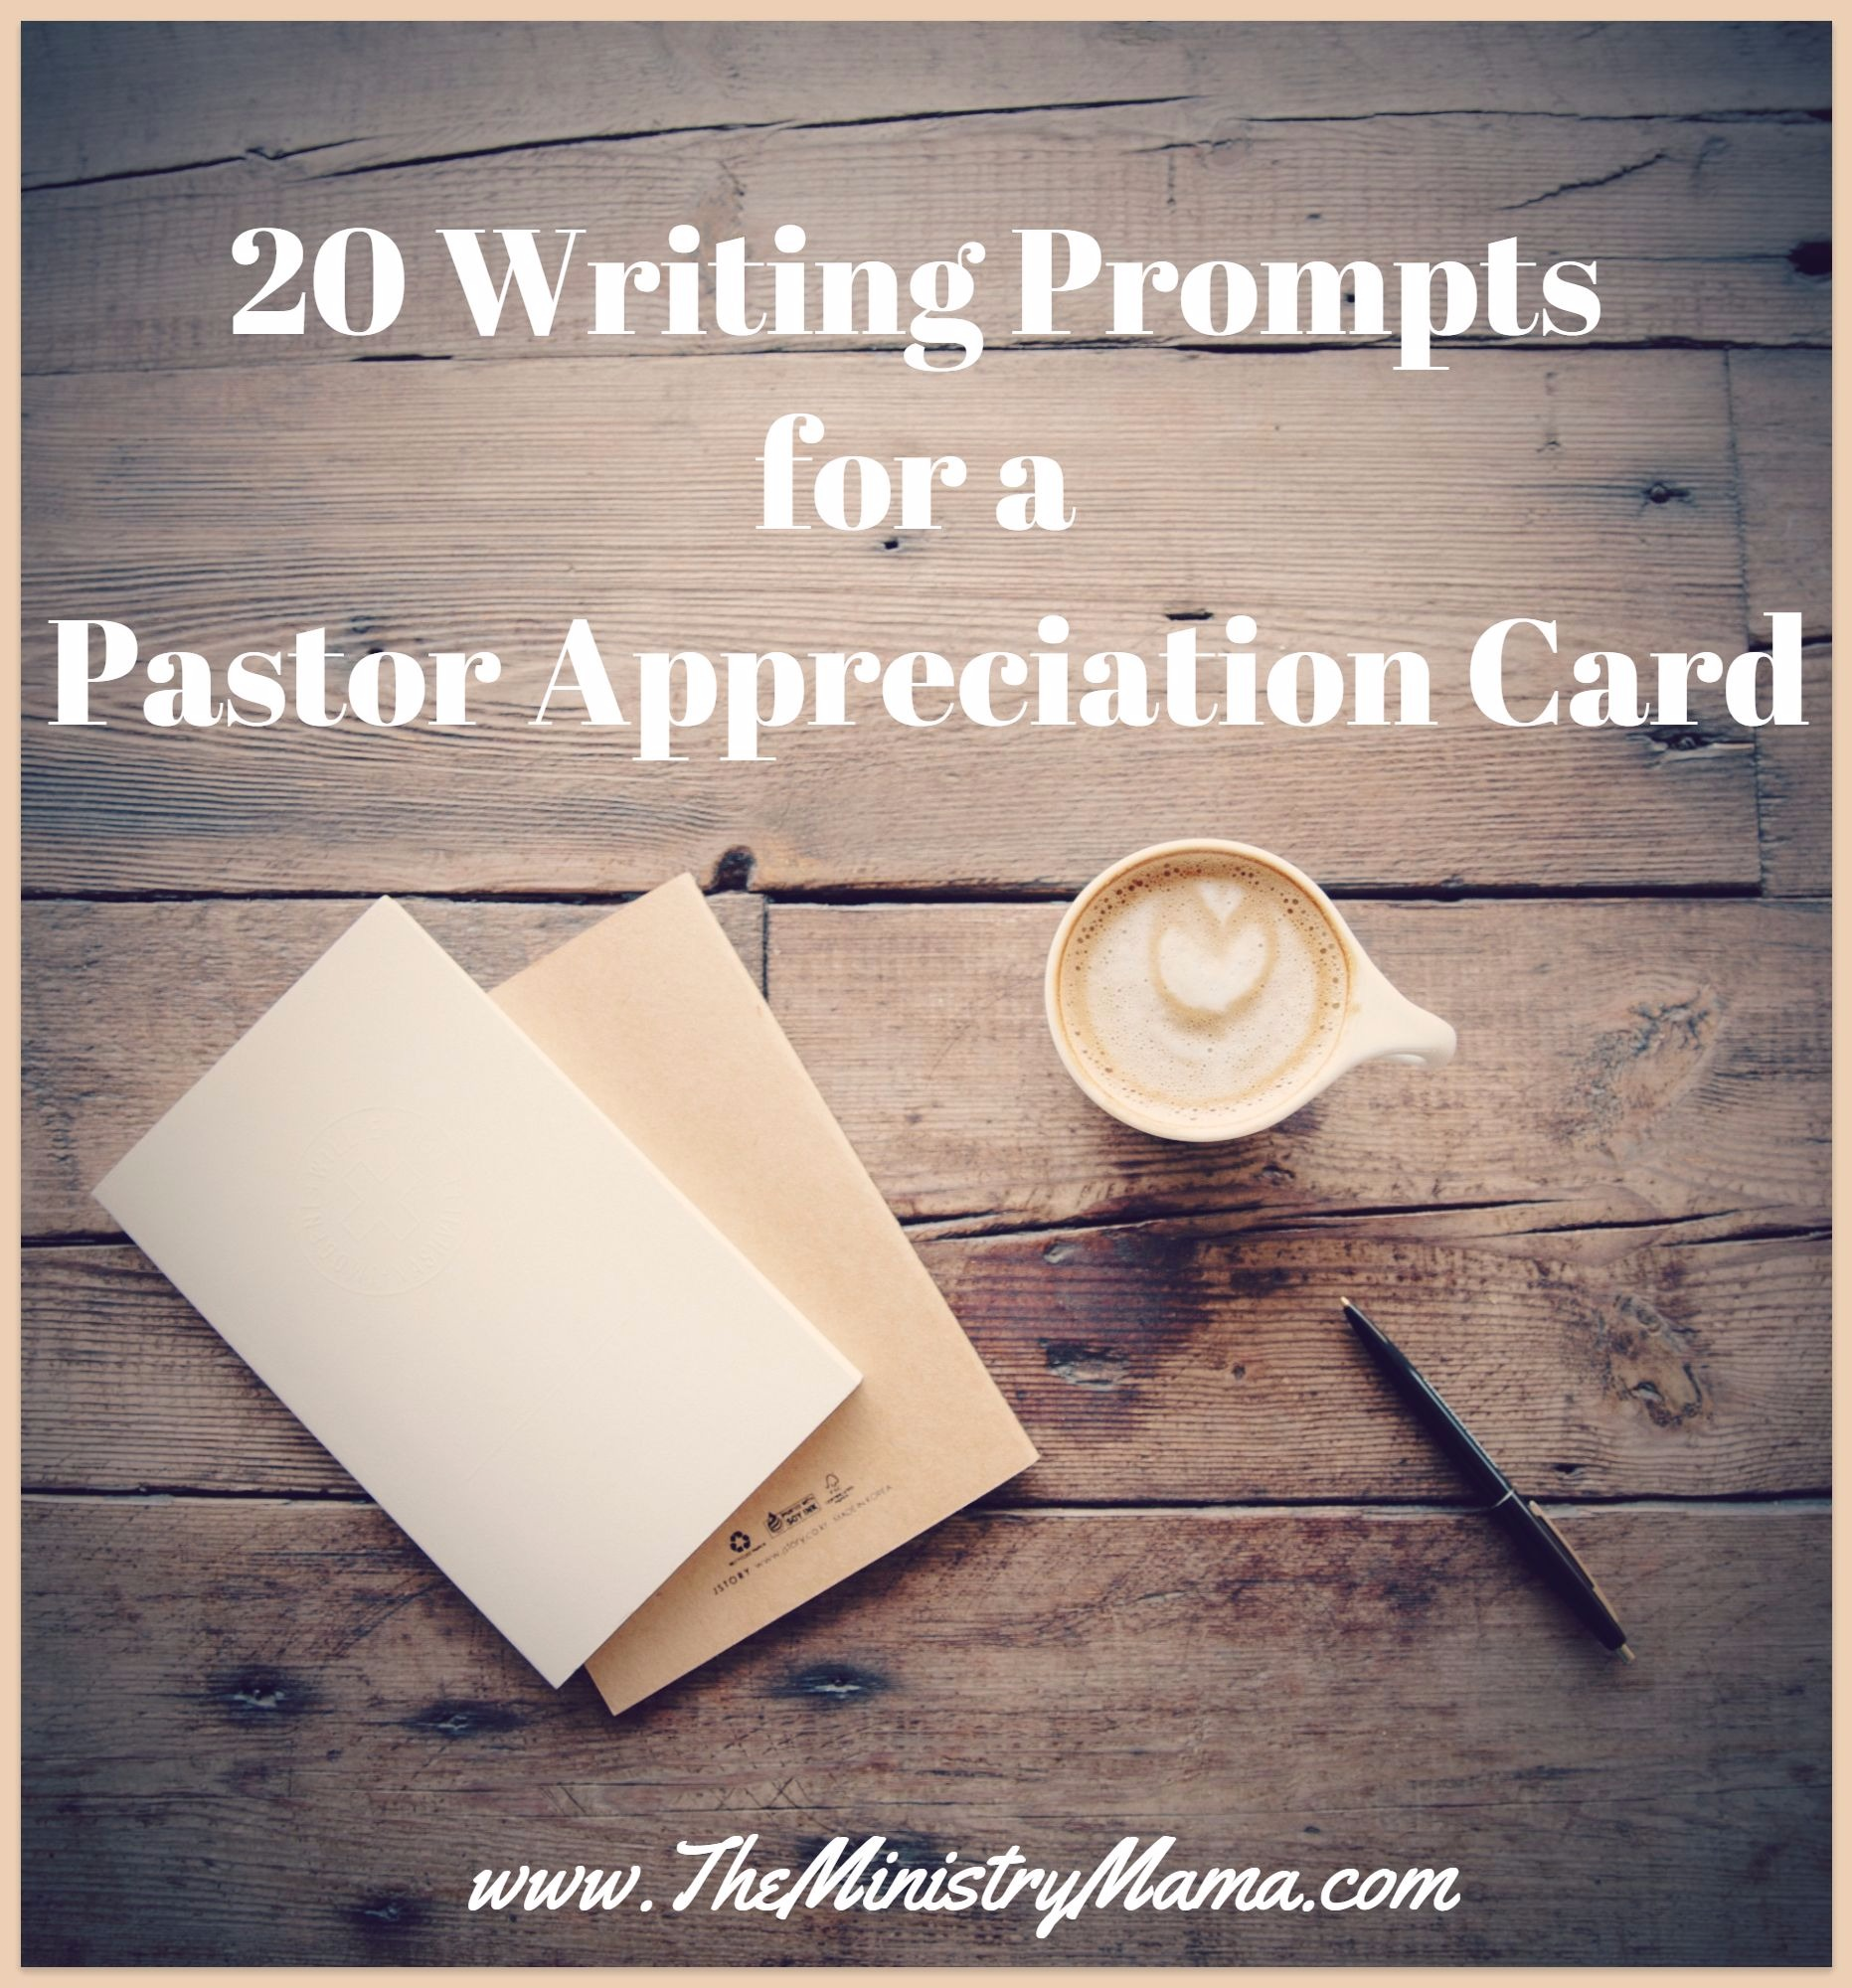 He Will Help You Fashion A Meaningful To Both And The Pastor Note That Can Be An Encouragement